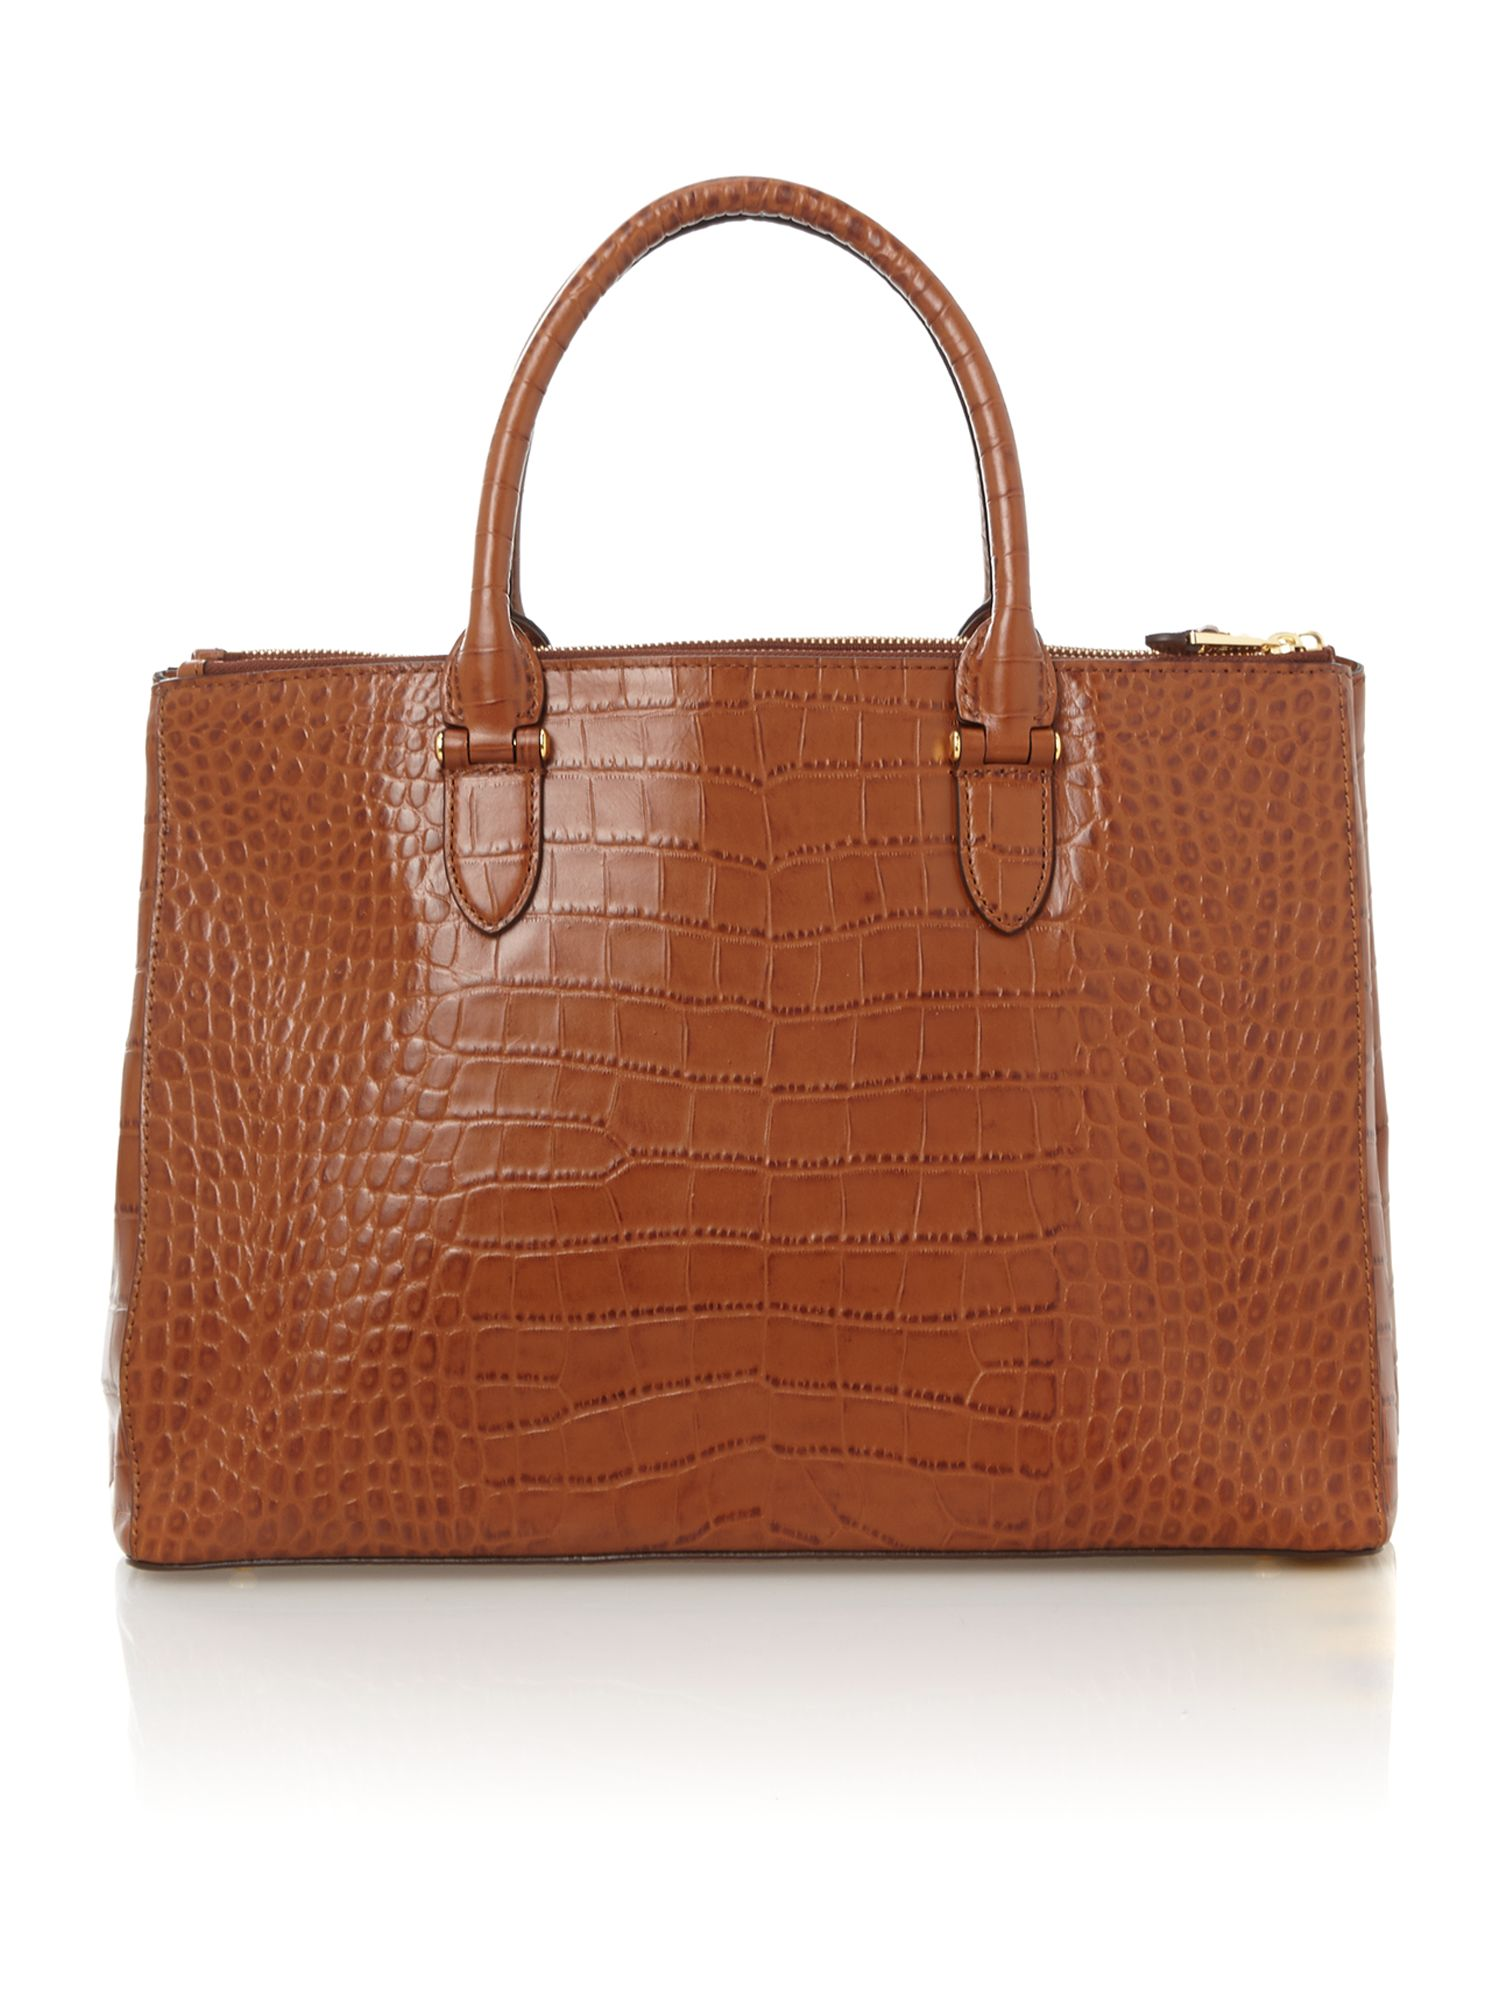 Lanesborough blue croc double zip tote bag